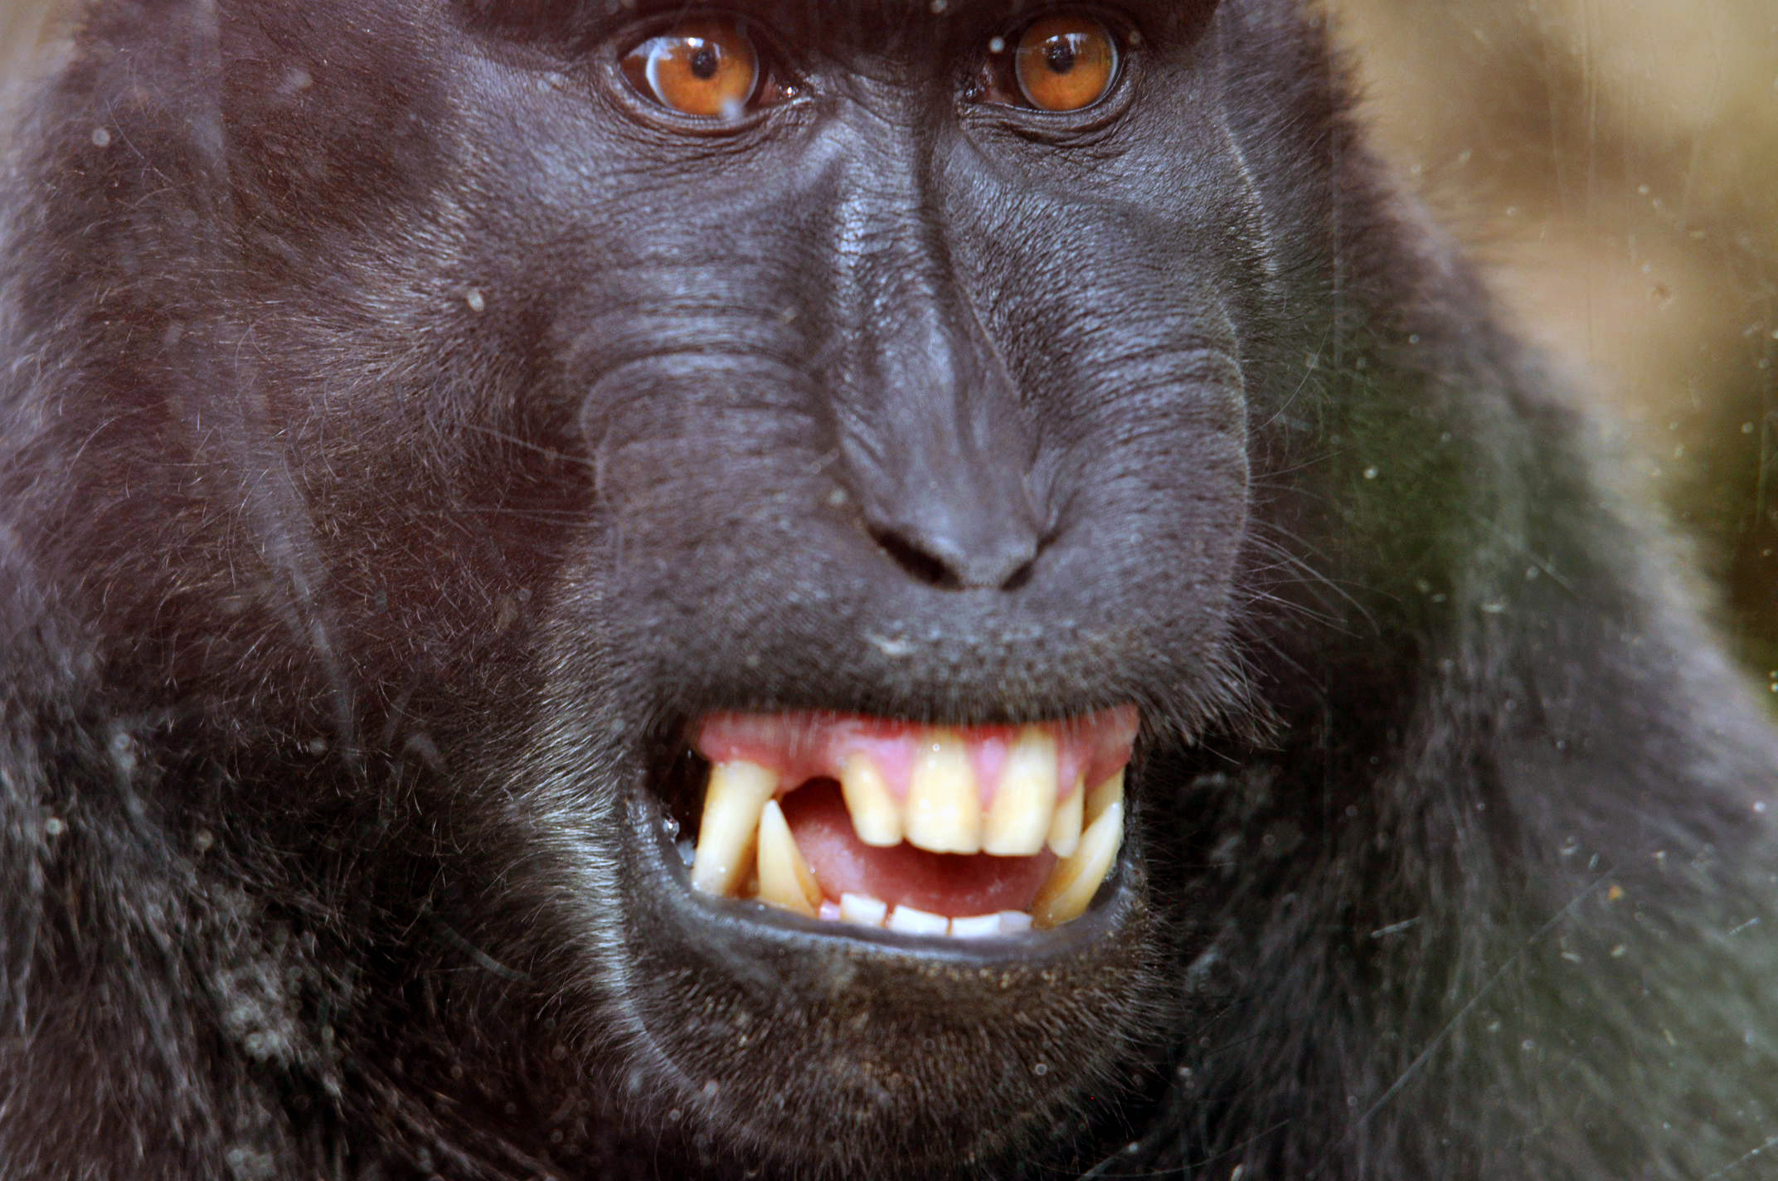 Photograph of an ape, photo source: promotional materials